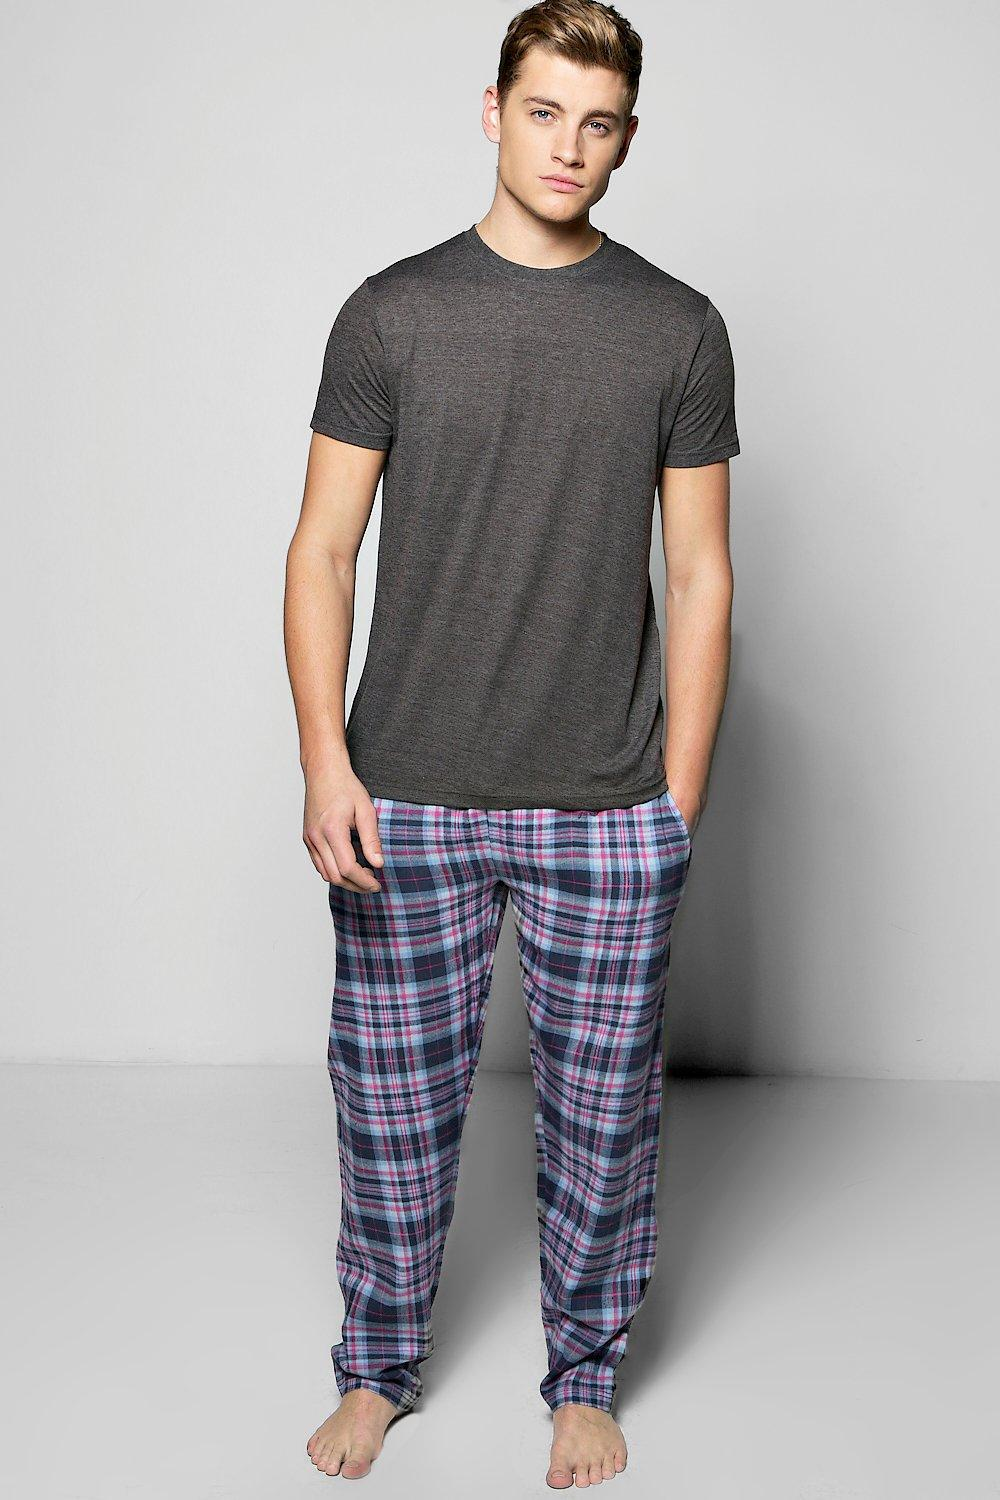 T-Shirt And Woven Check Loungewear Set